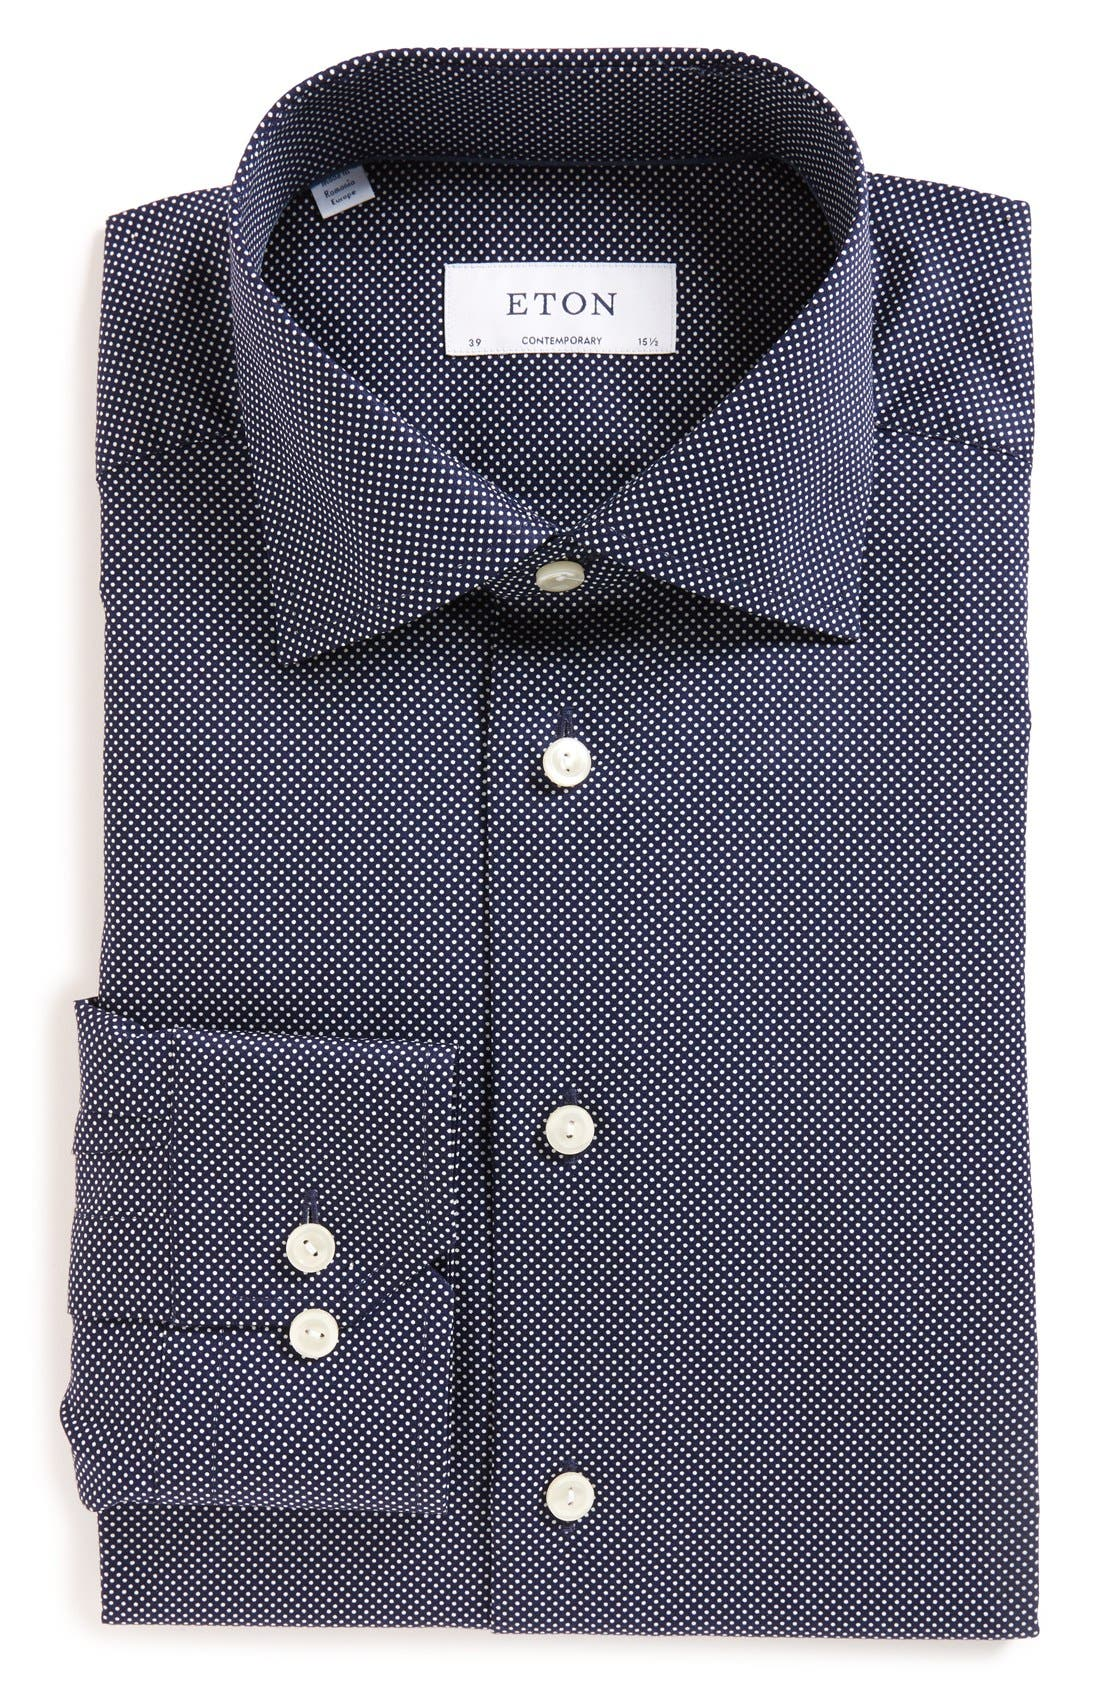 Main Image - Eton Contemporary Fit Dot Dress Shirt